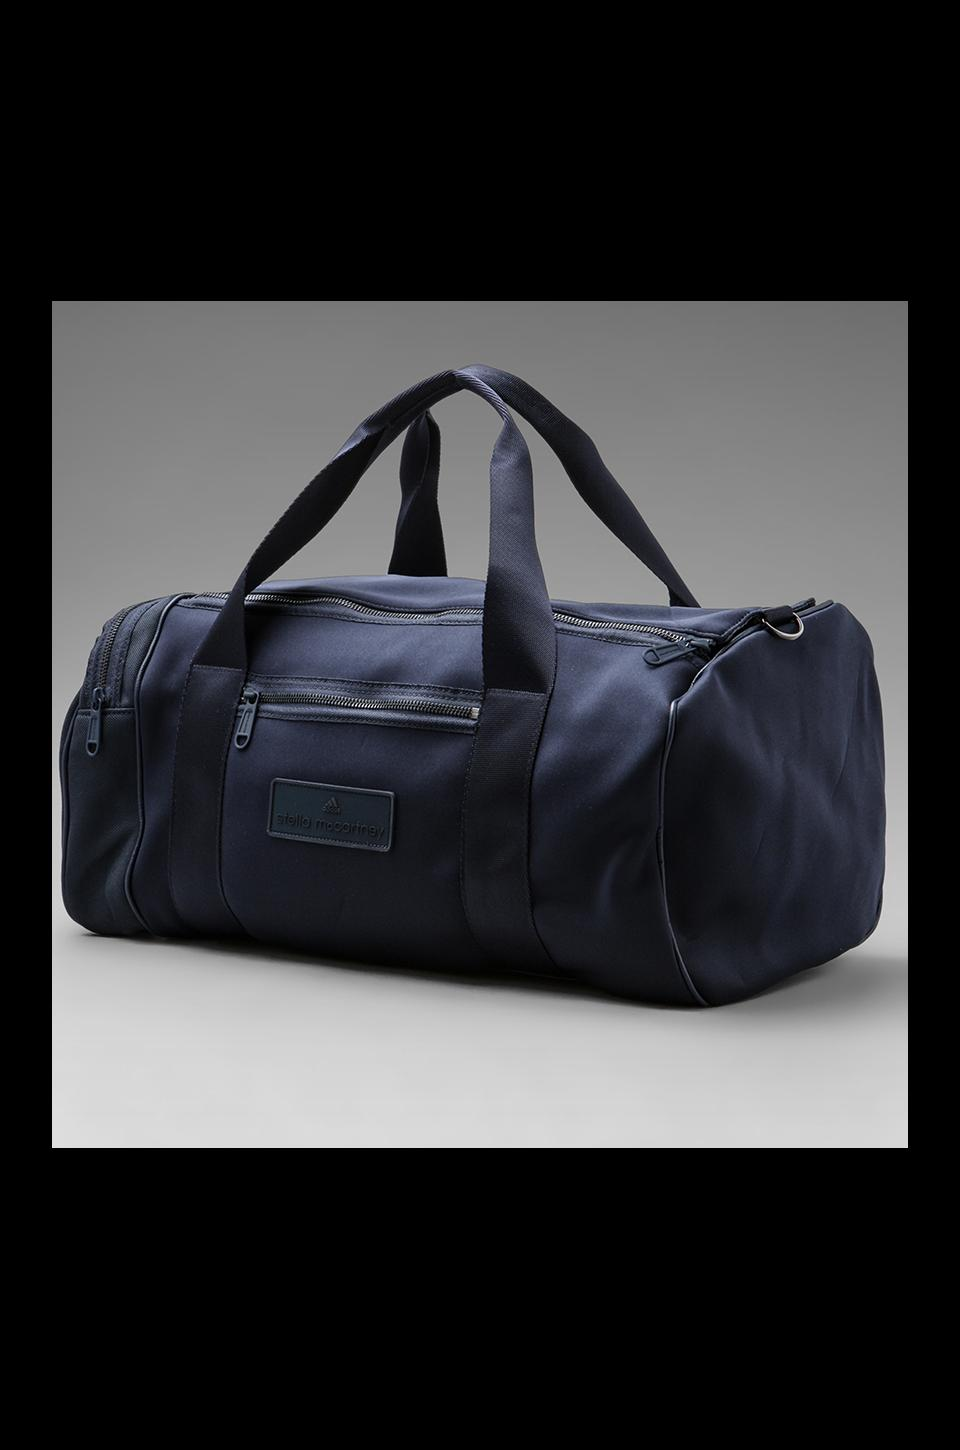 adidas by Stella McCartney Fashion Travel Bag in Urban Sky